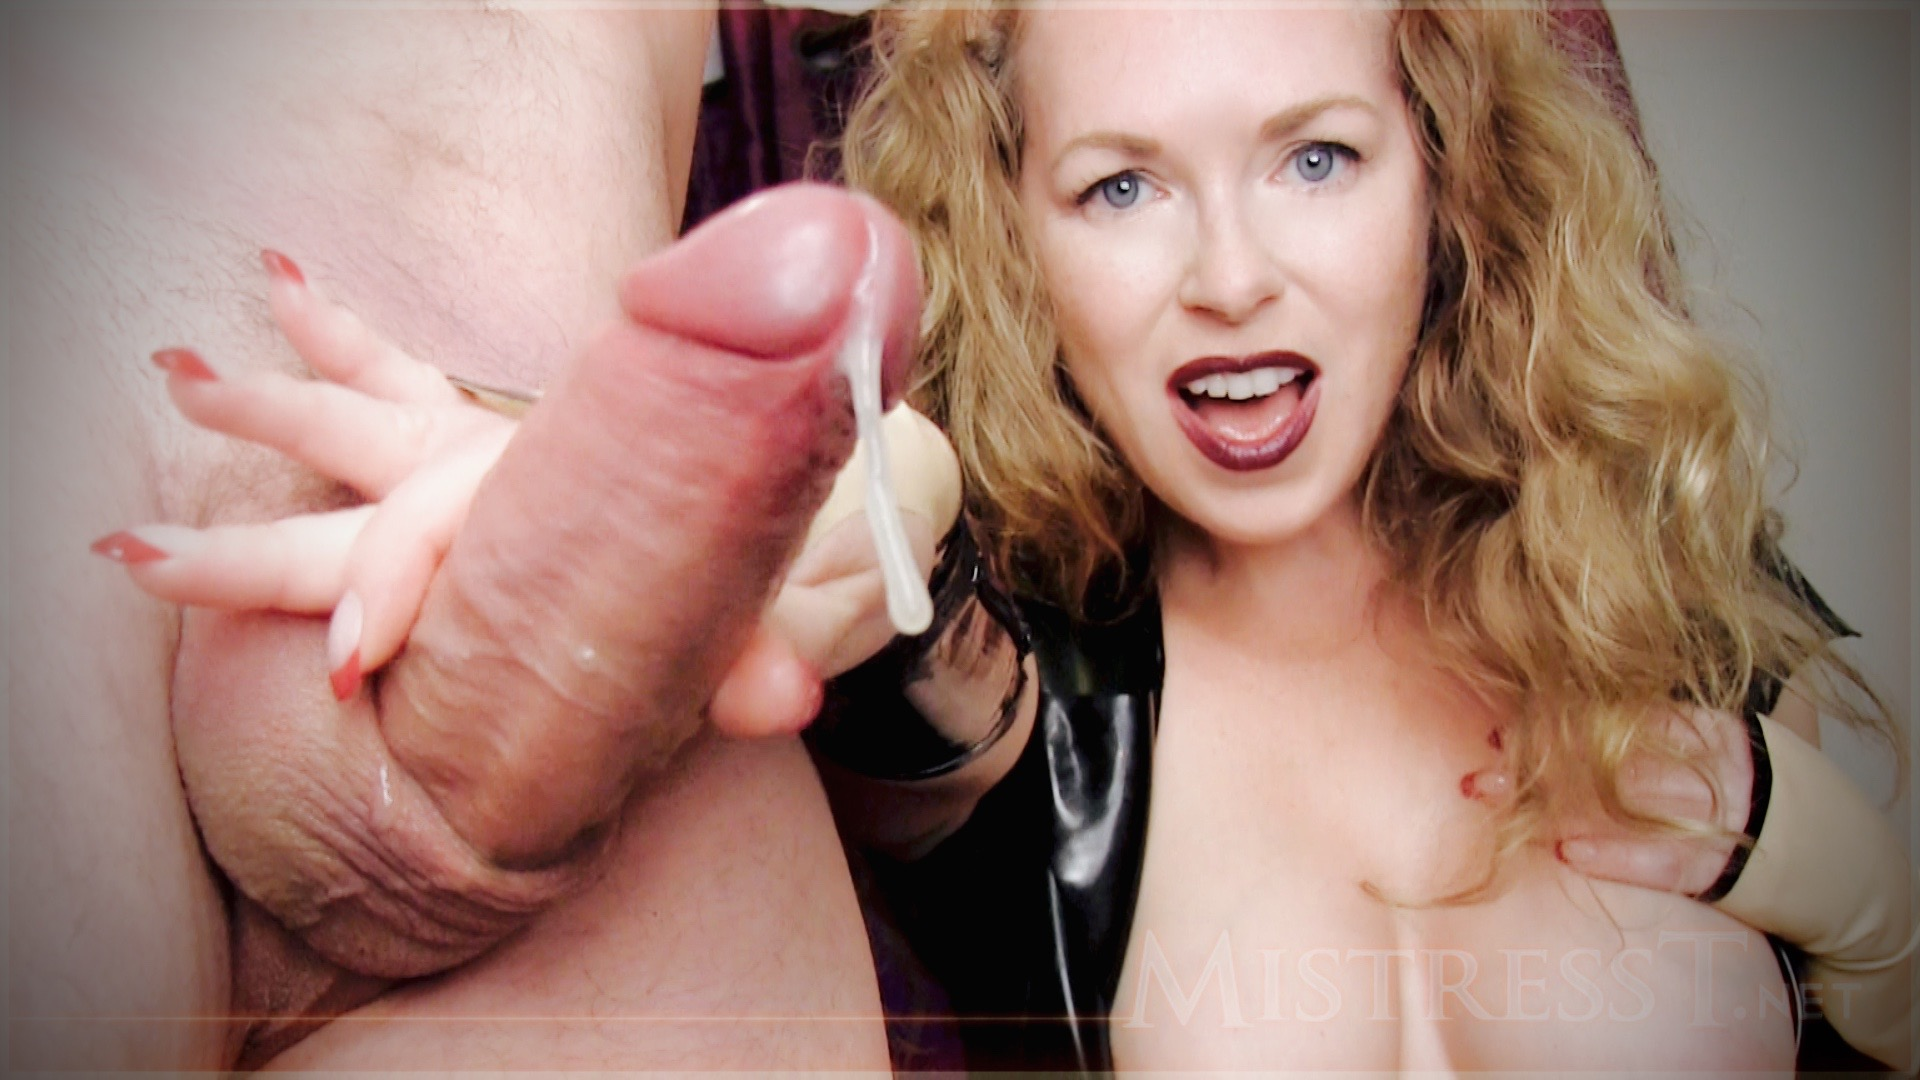 008 my slave get reward 3